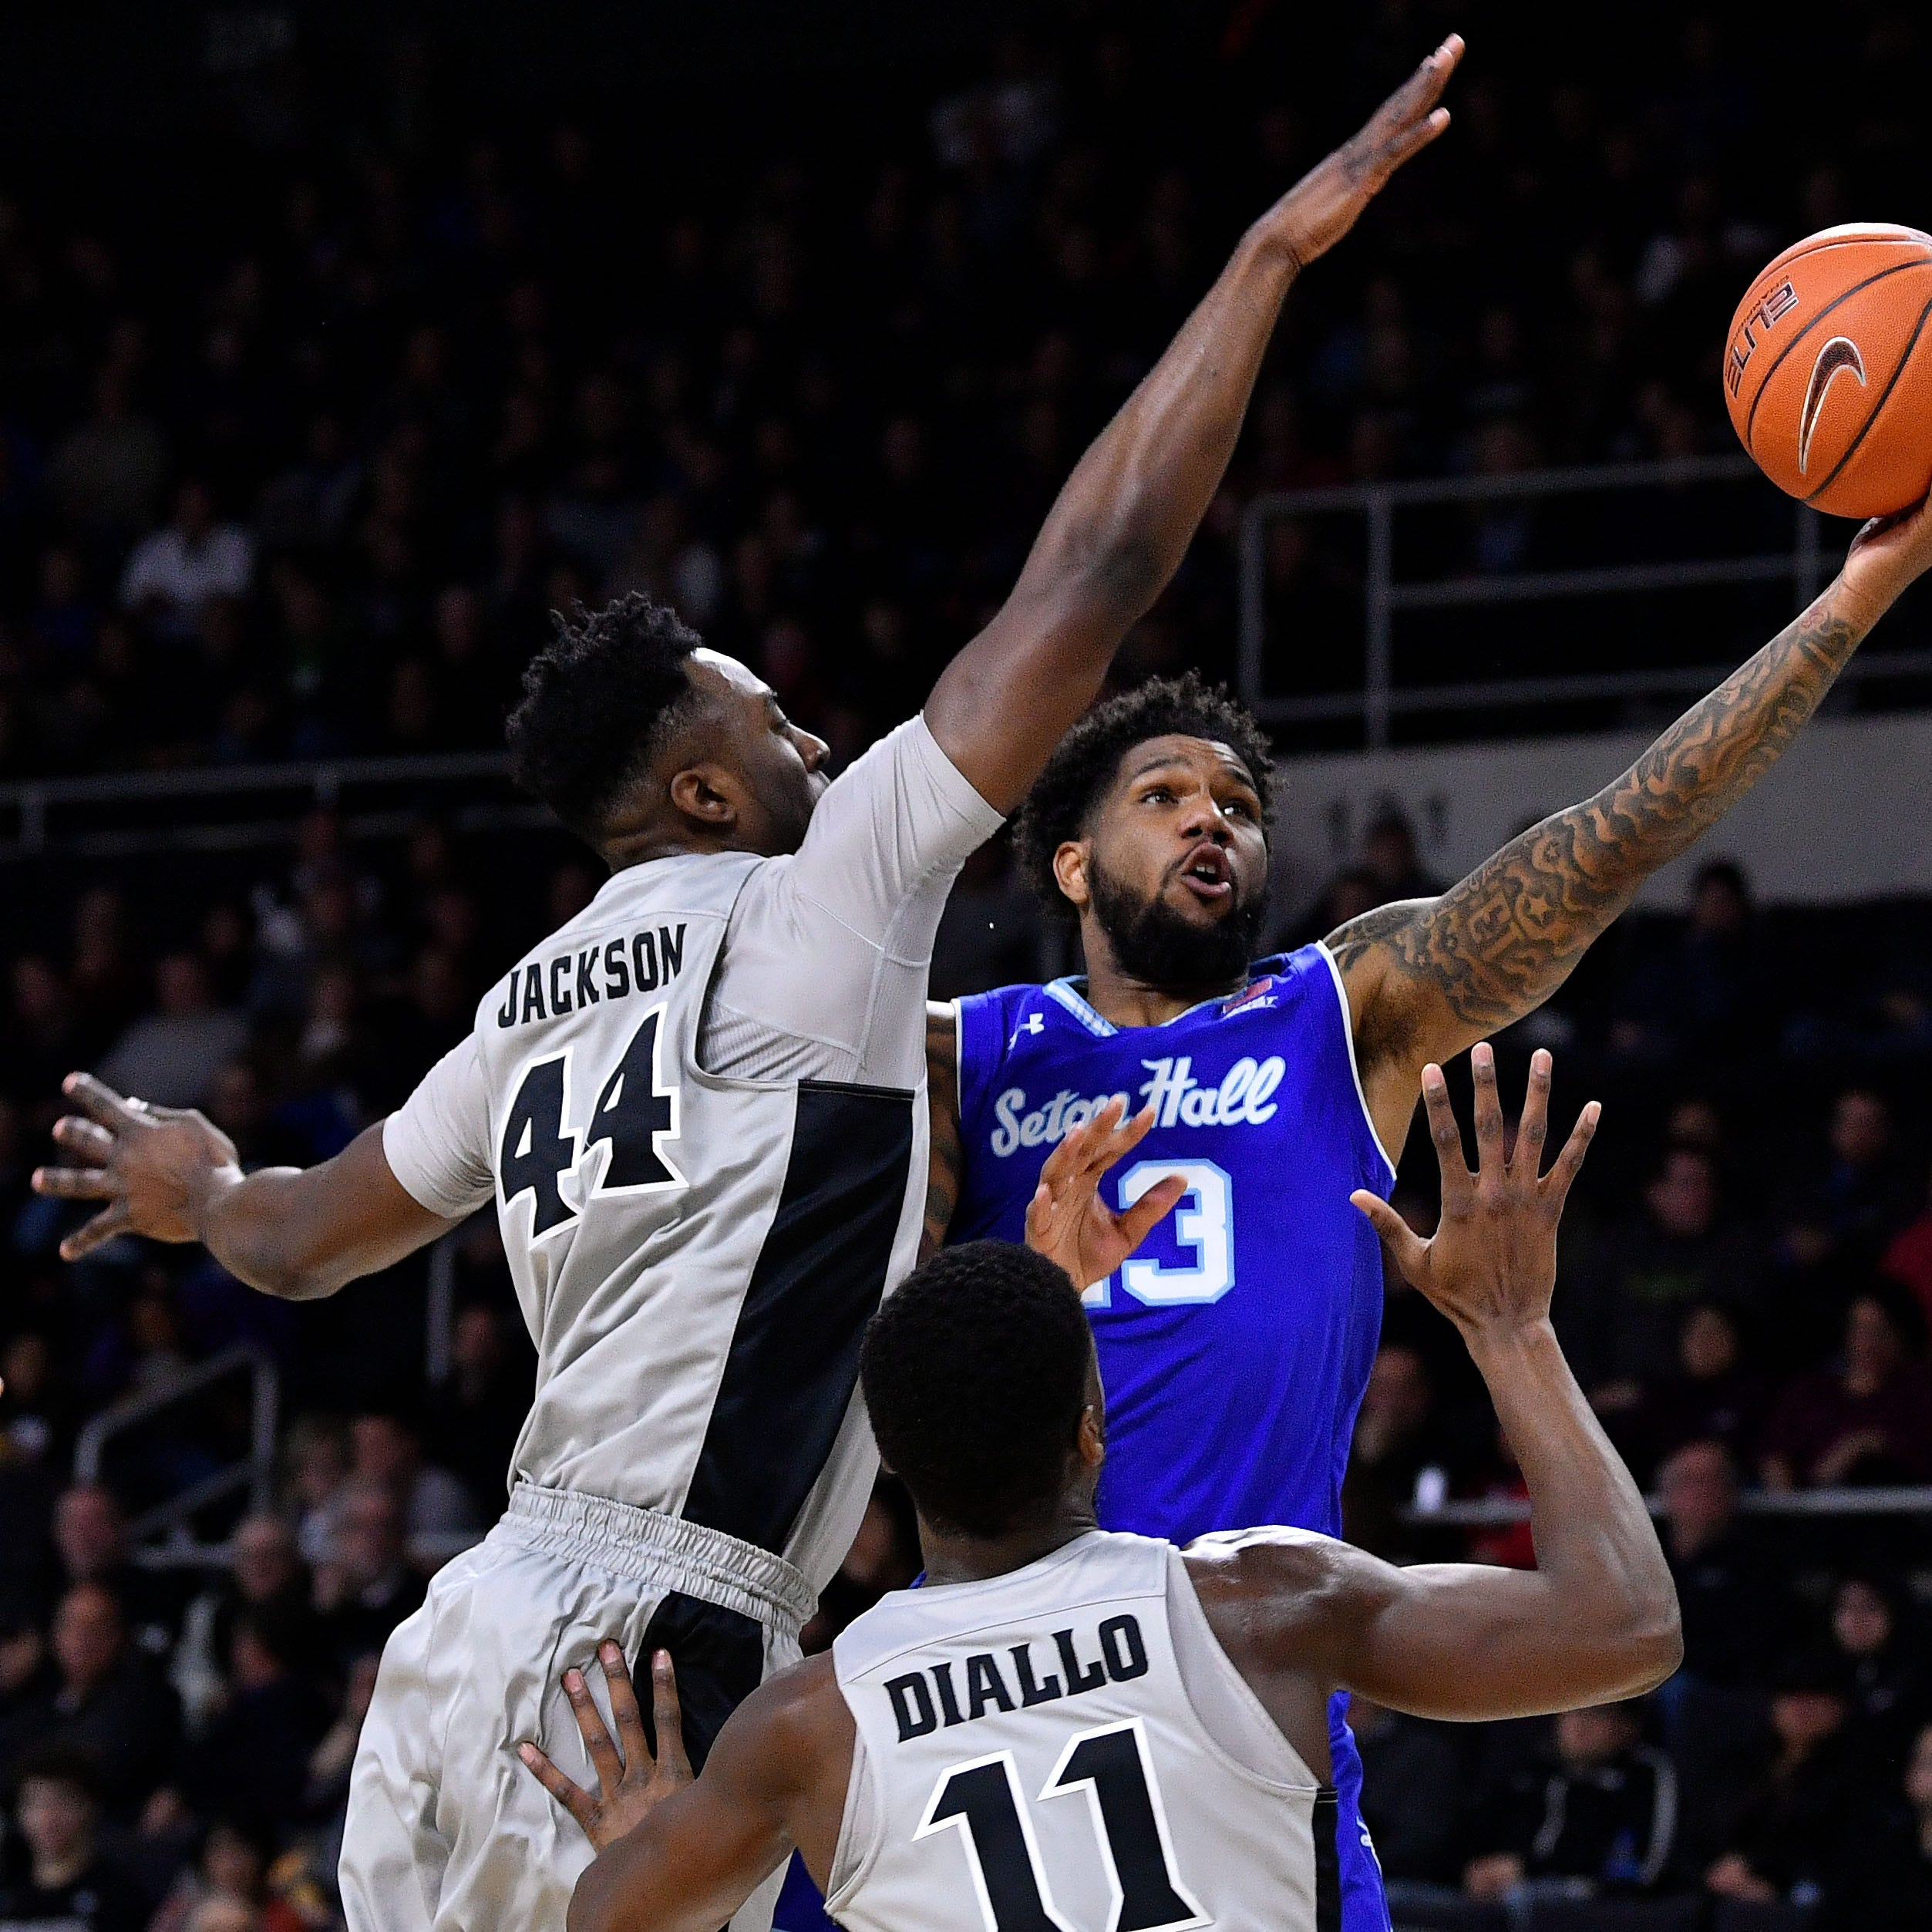 Seton Hall basketball: With DePaul on deck, Willard blasts 'absurd' Big East schedule